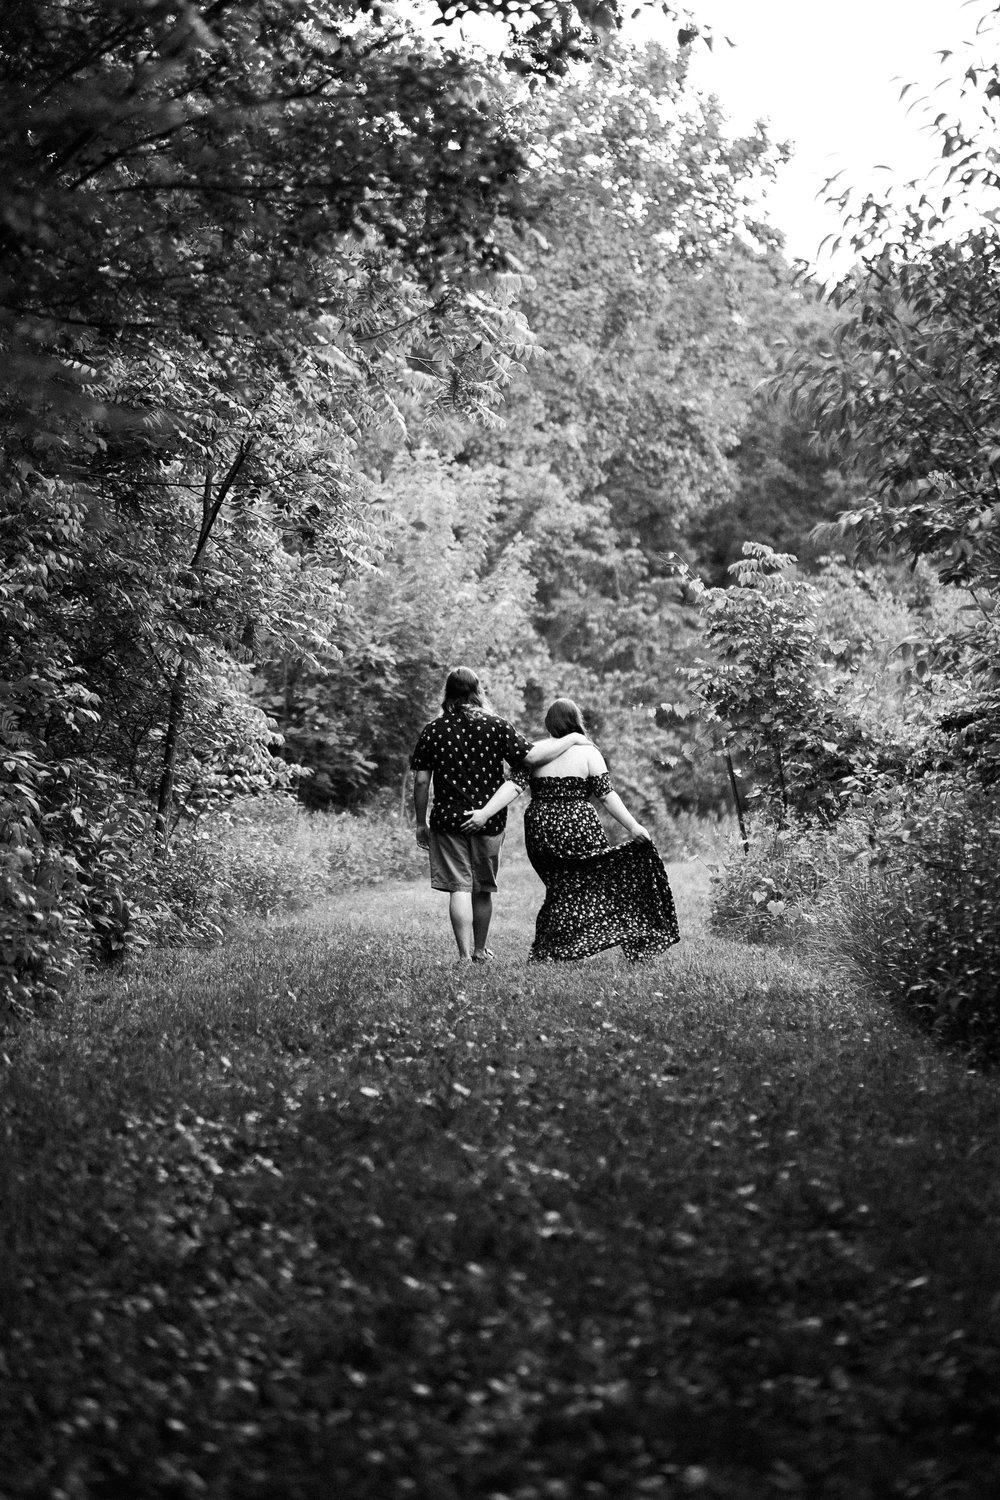 SavannahandTomEngagement-78.jpg